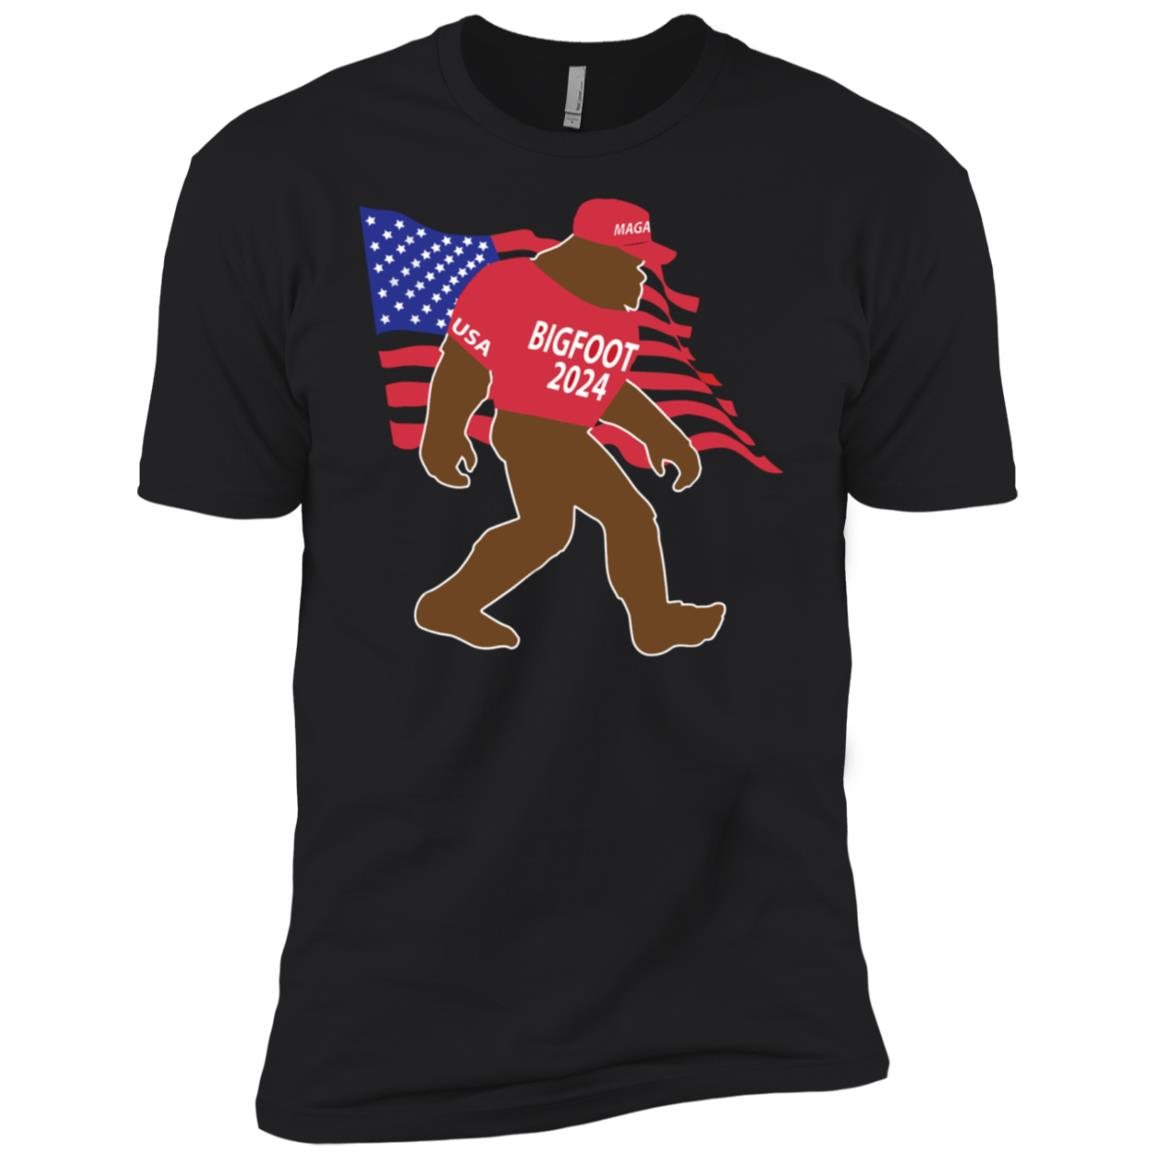 Bigfoot 2024 MAGA Hat Trump Republican USA Men Short Sleeve T-Shirt